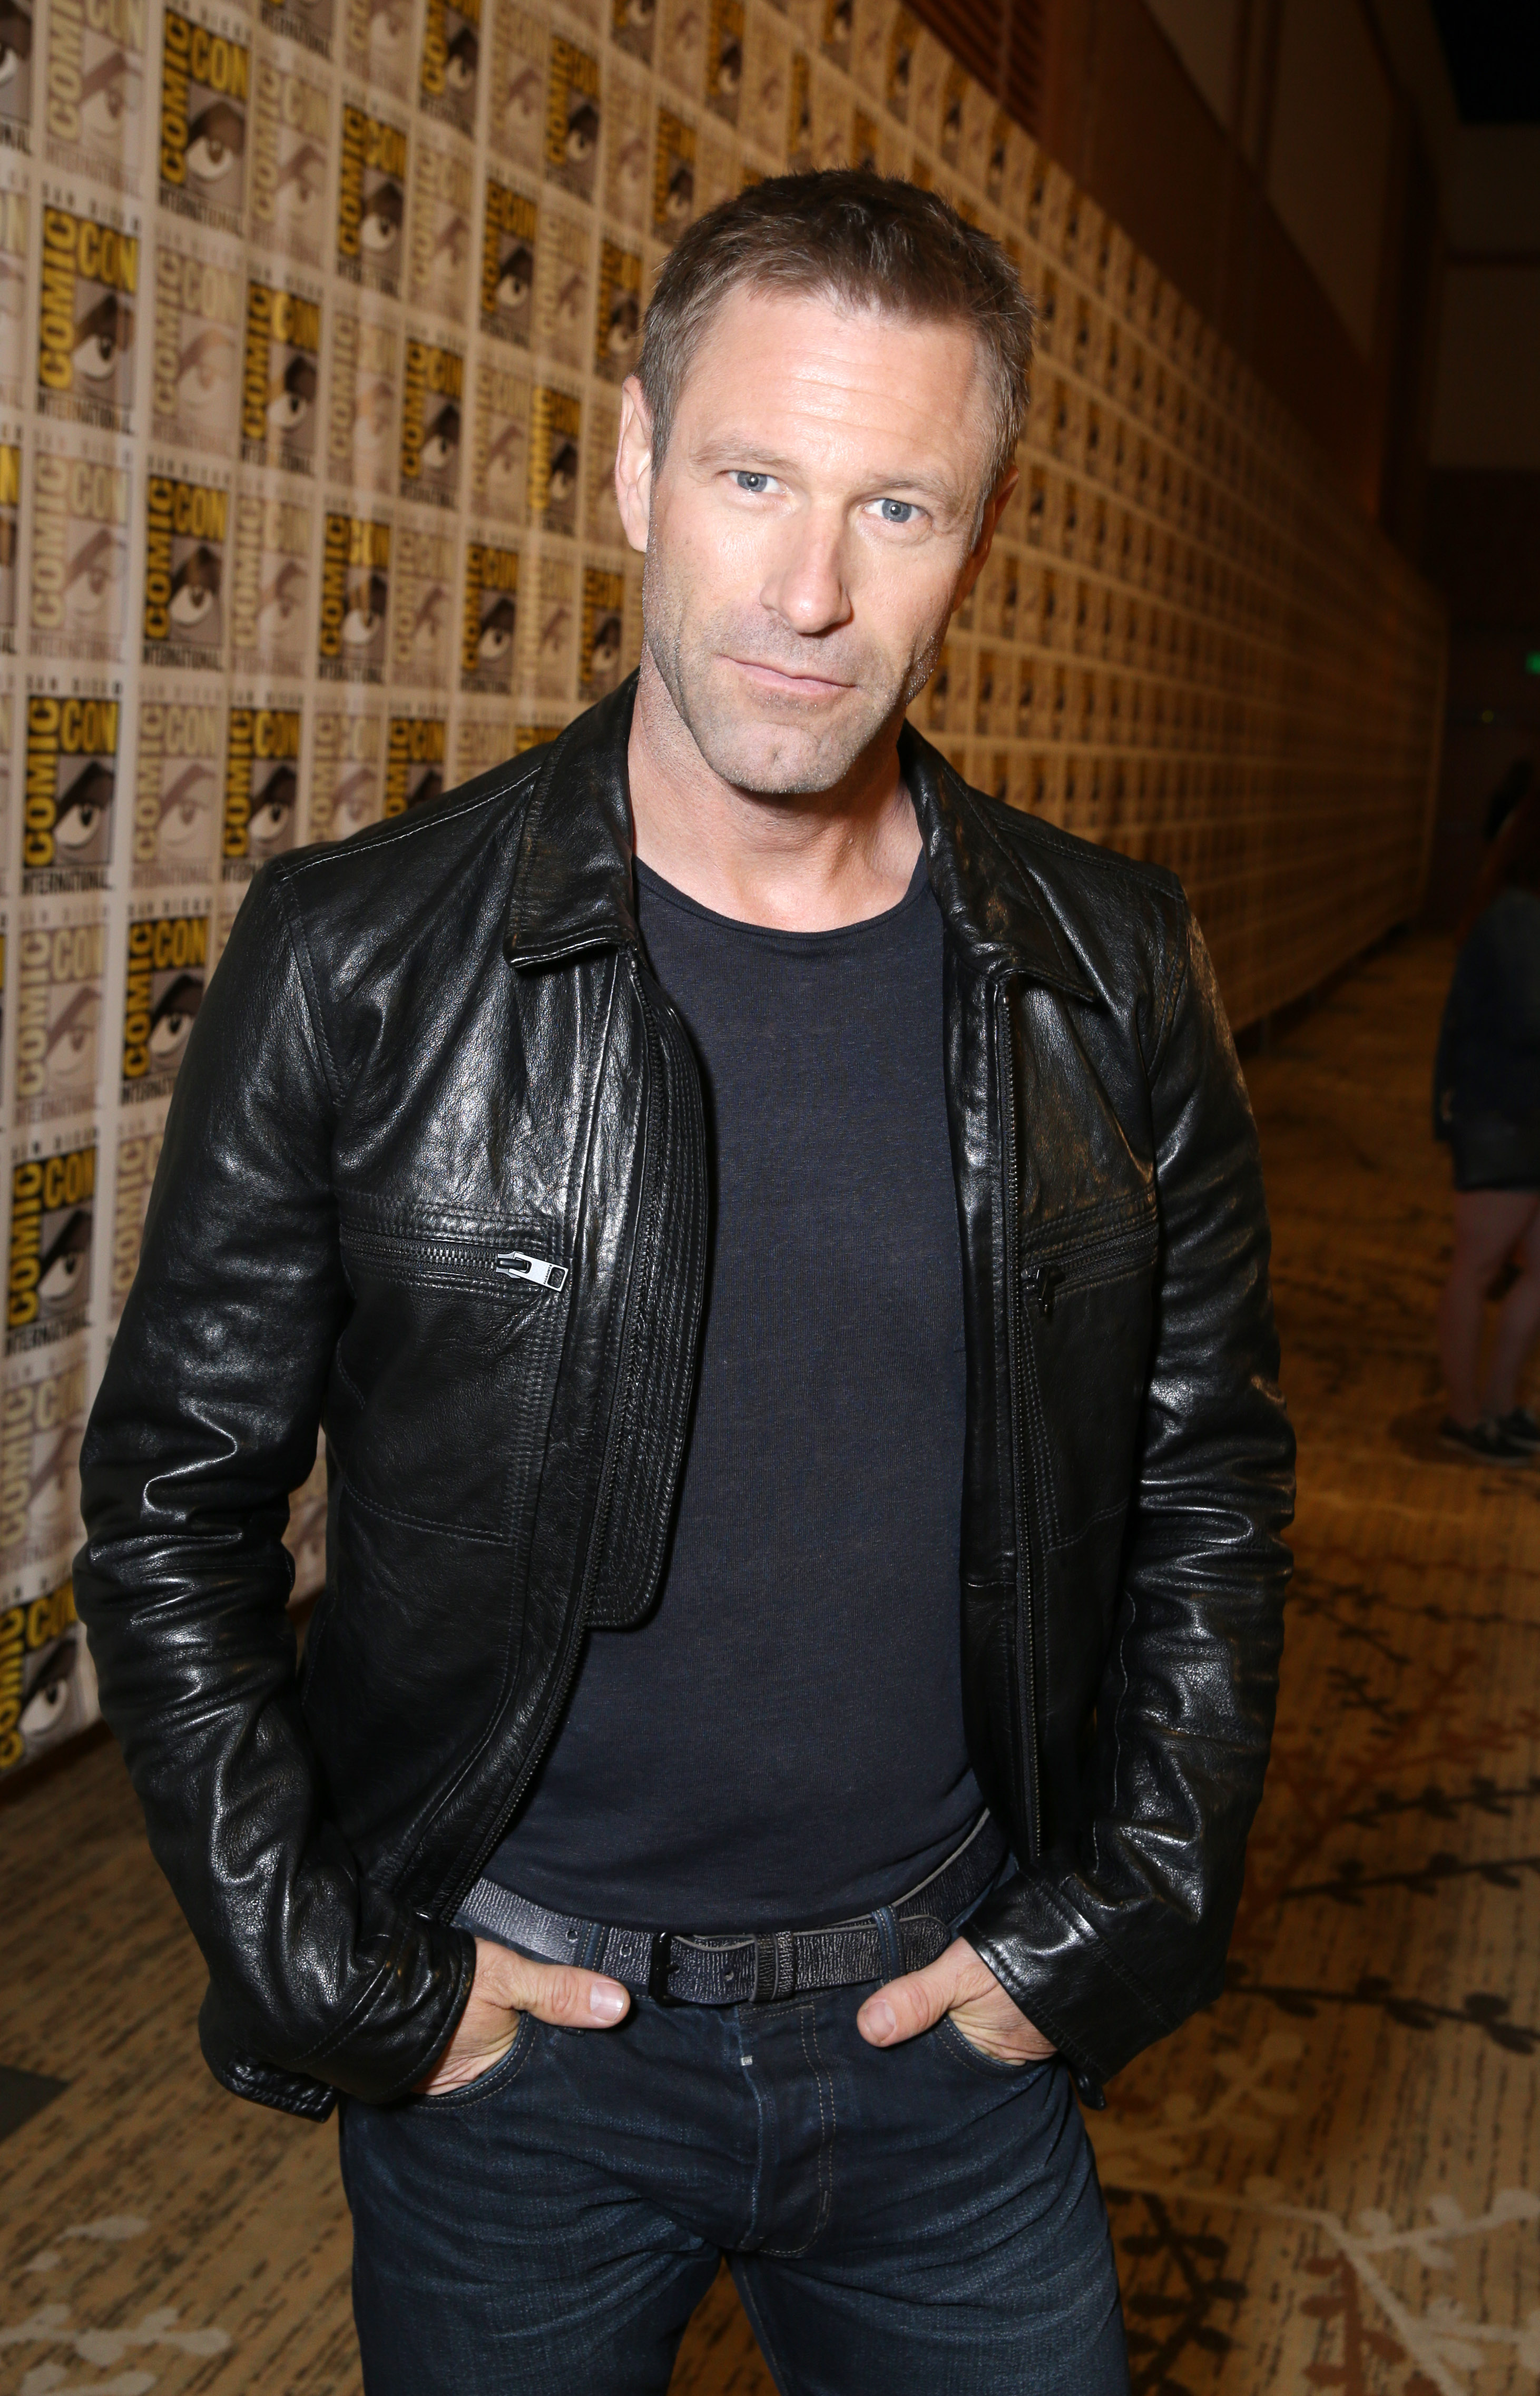 EC1 2823 I, Frankenstein Queries Immortality with Photos at San Diego Comic Con